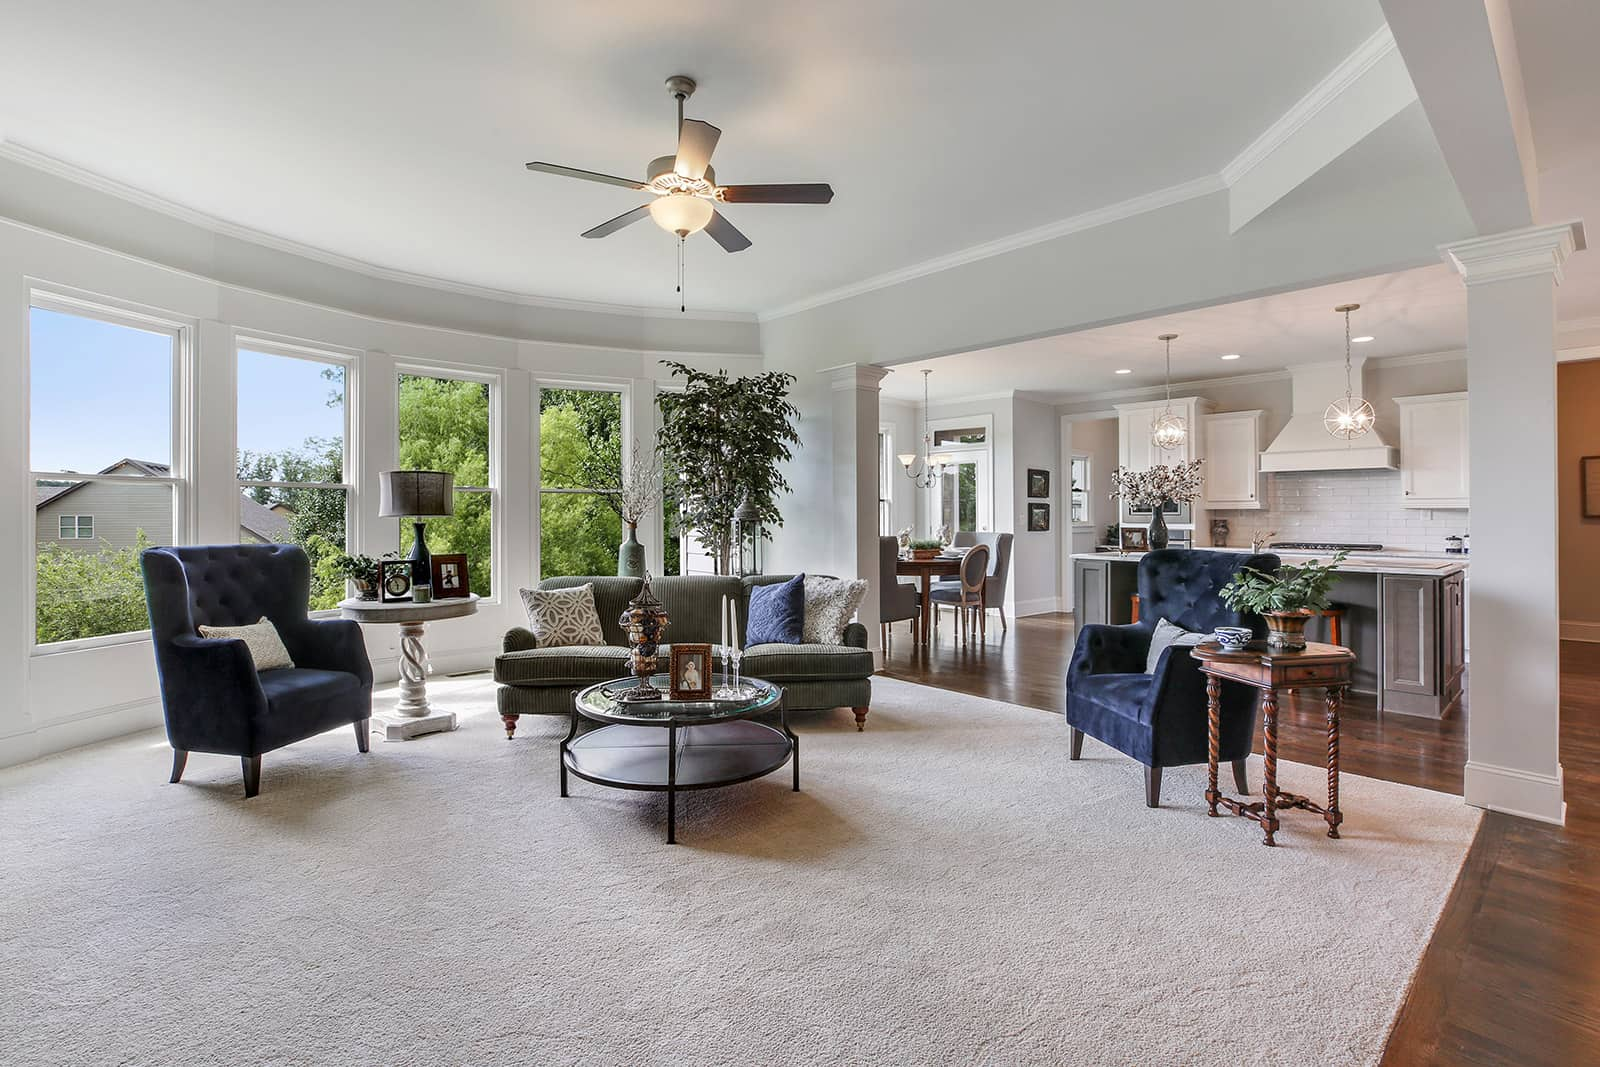 lakeside living home featuring open concept main living area